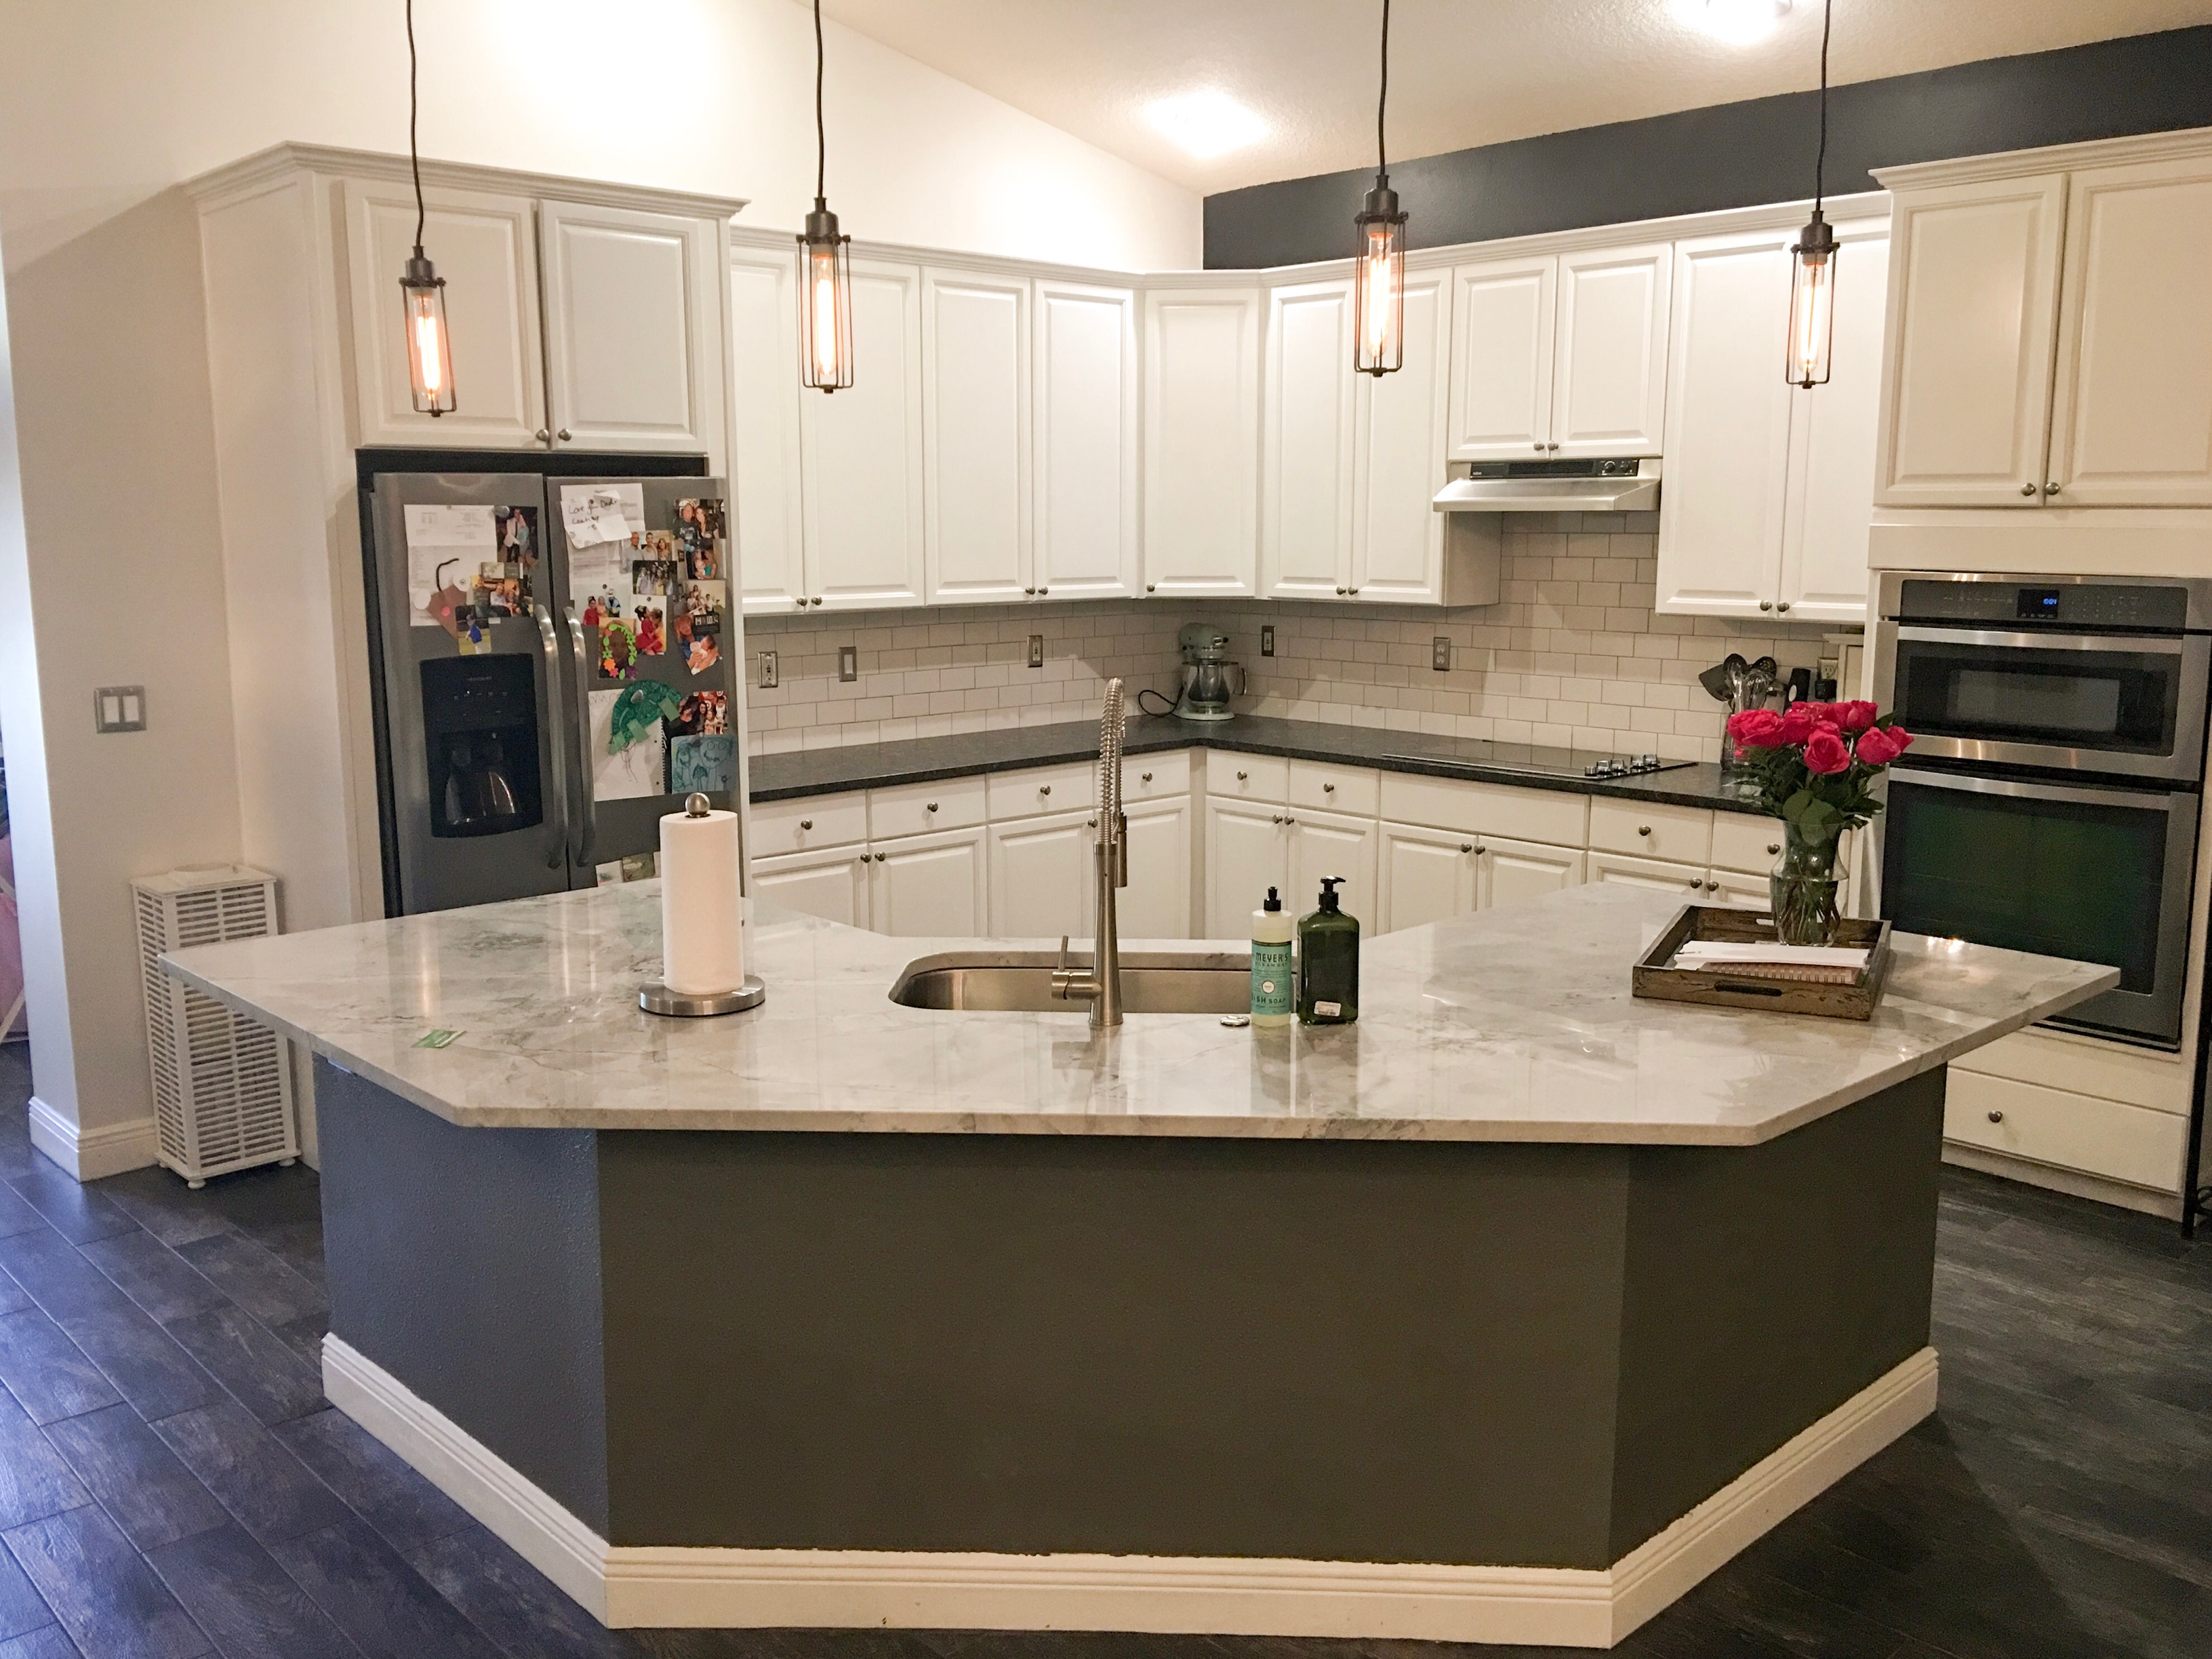 pertaining countertop quartz can coffee decor the idea heat to a take countertops tampa table